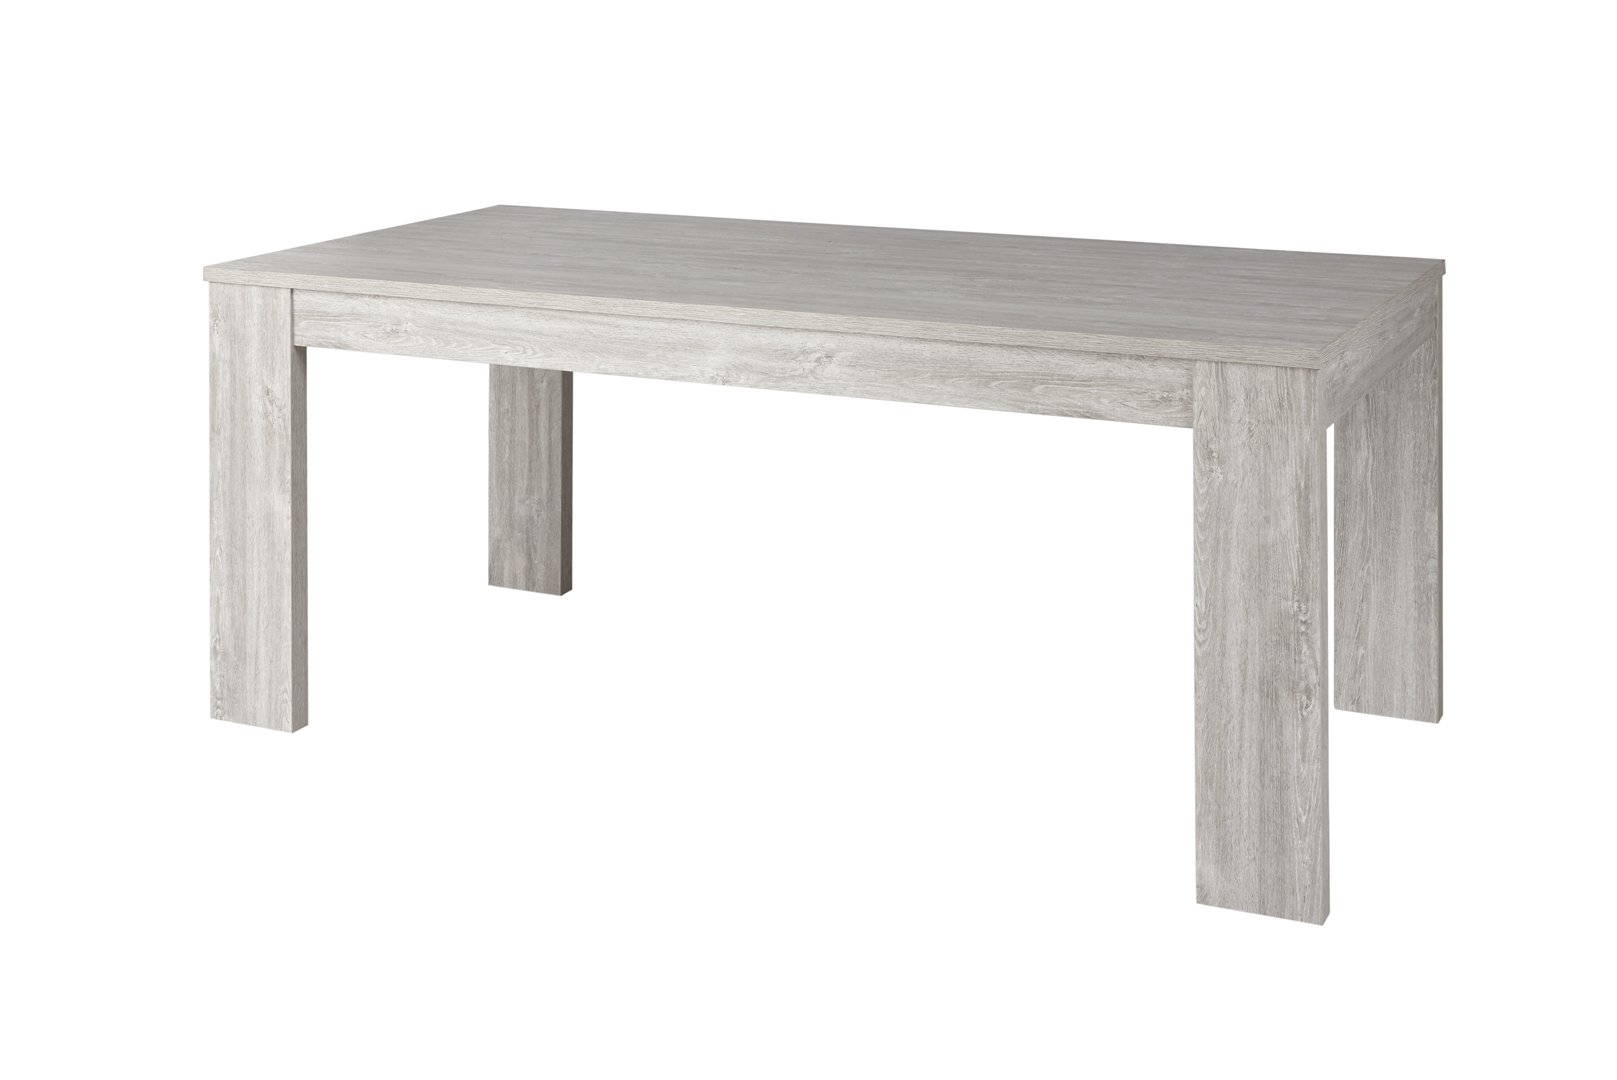 Table de salle manger contemporaine ch ne clair livaro matelpro - Table de salle a manger contemporaine ...